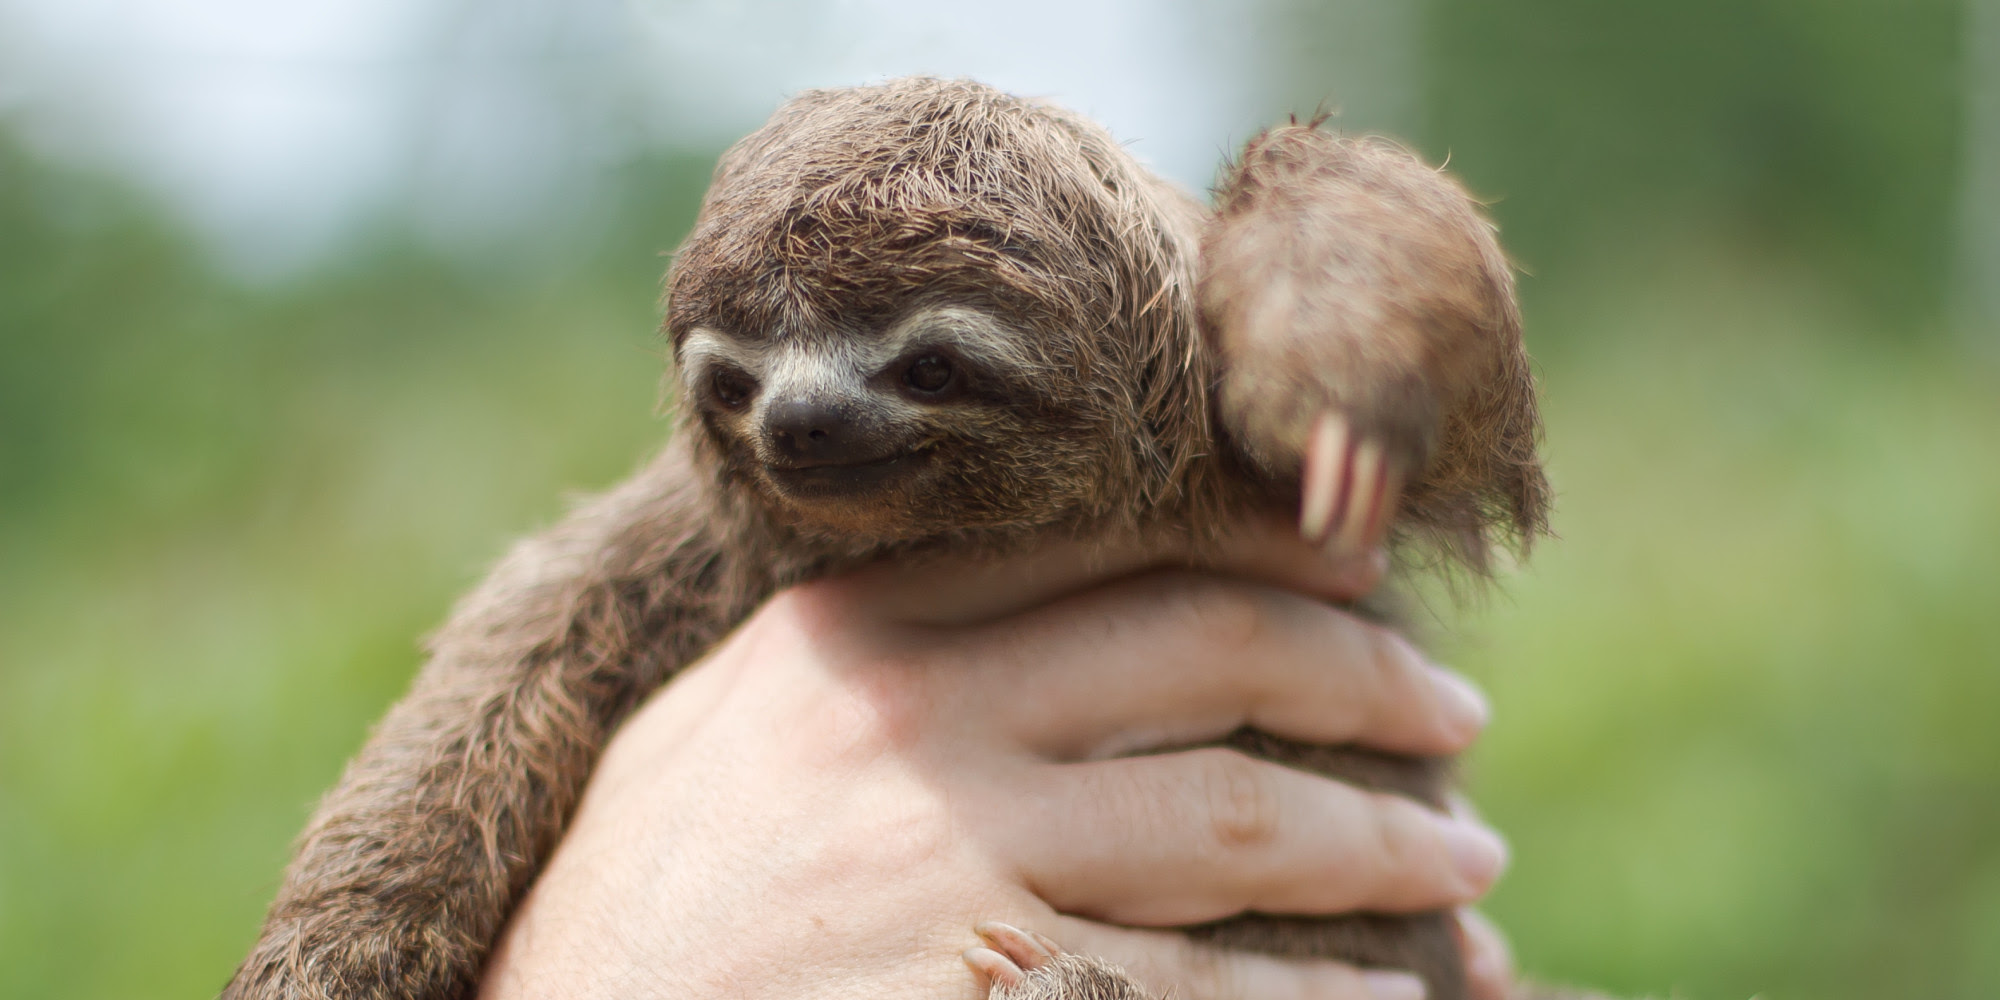 Image result for best pics of baby sloths